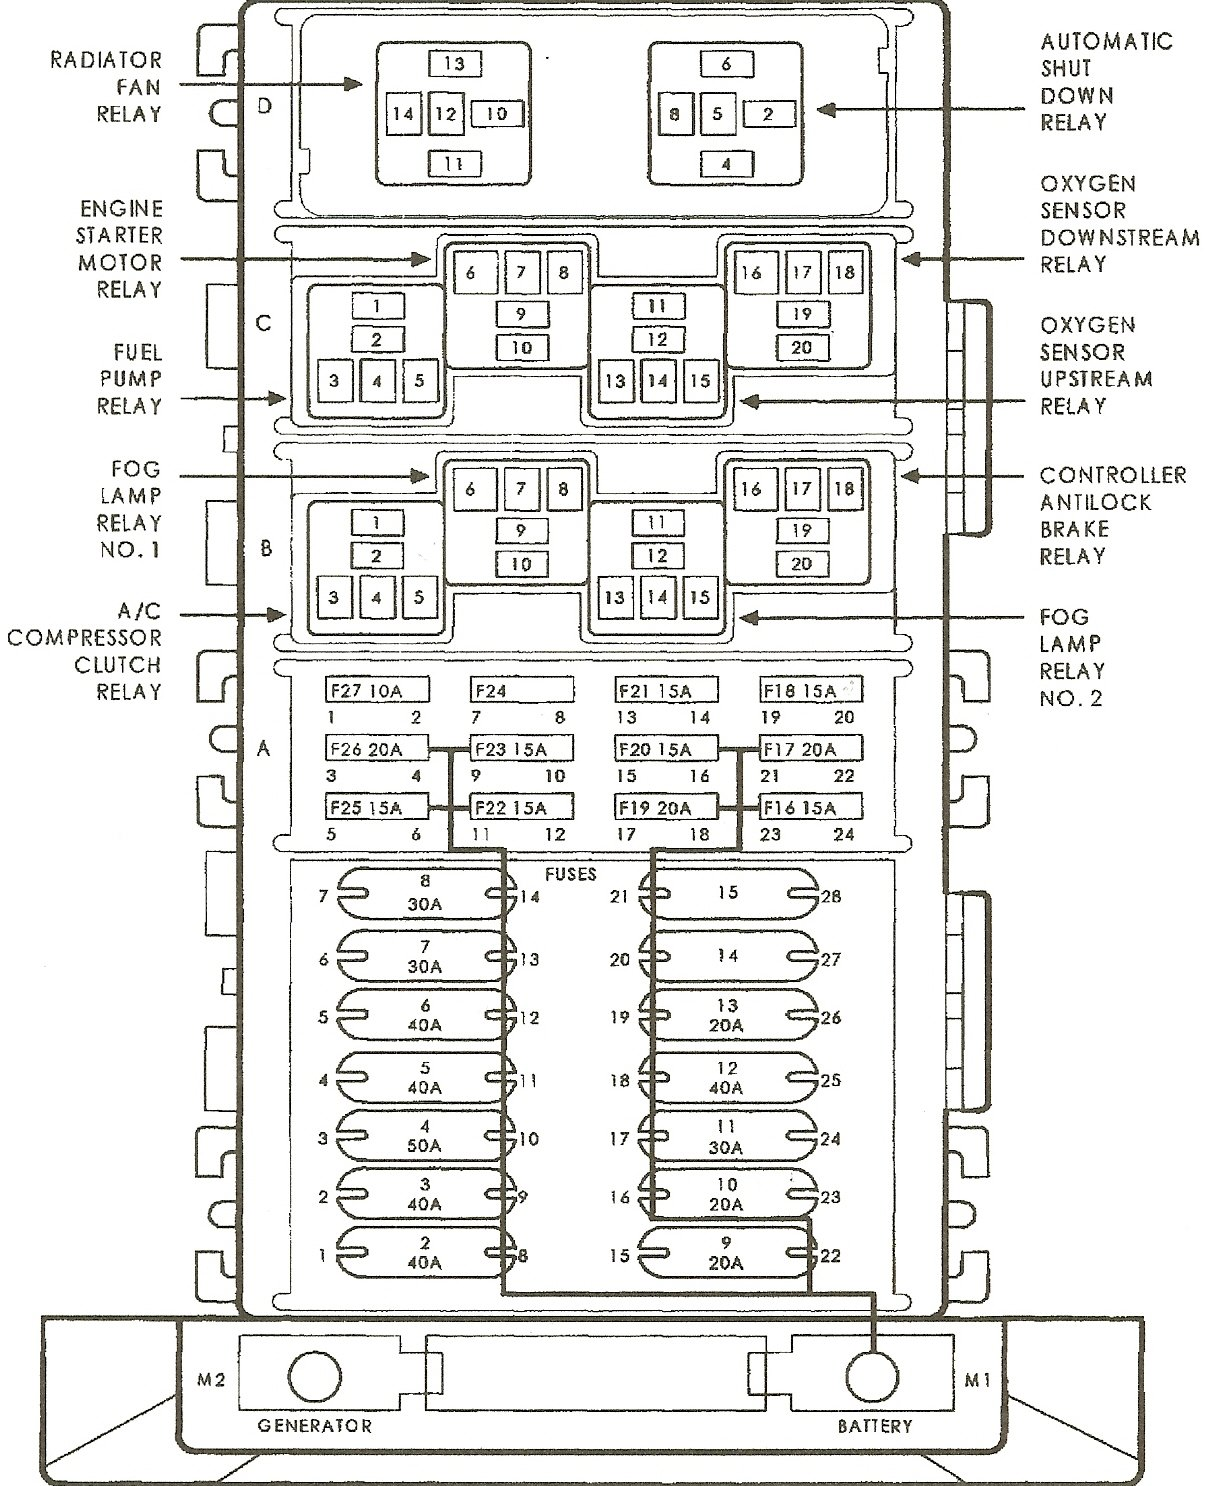 2011 05 25_164640_fuse_box jeep cherokee relay diagram,cherokee wiring diagram images database,2001 Xj Fuse Box Diagram